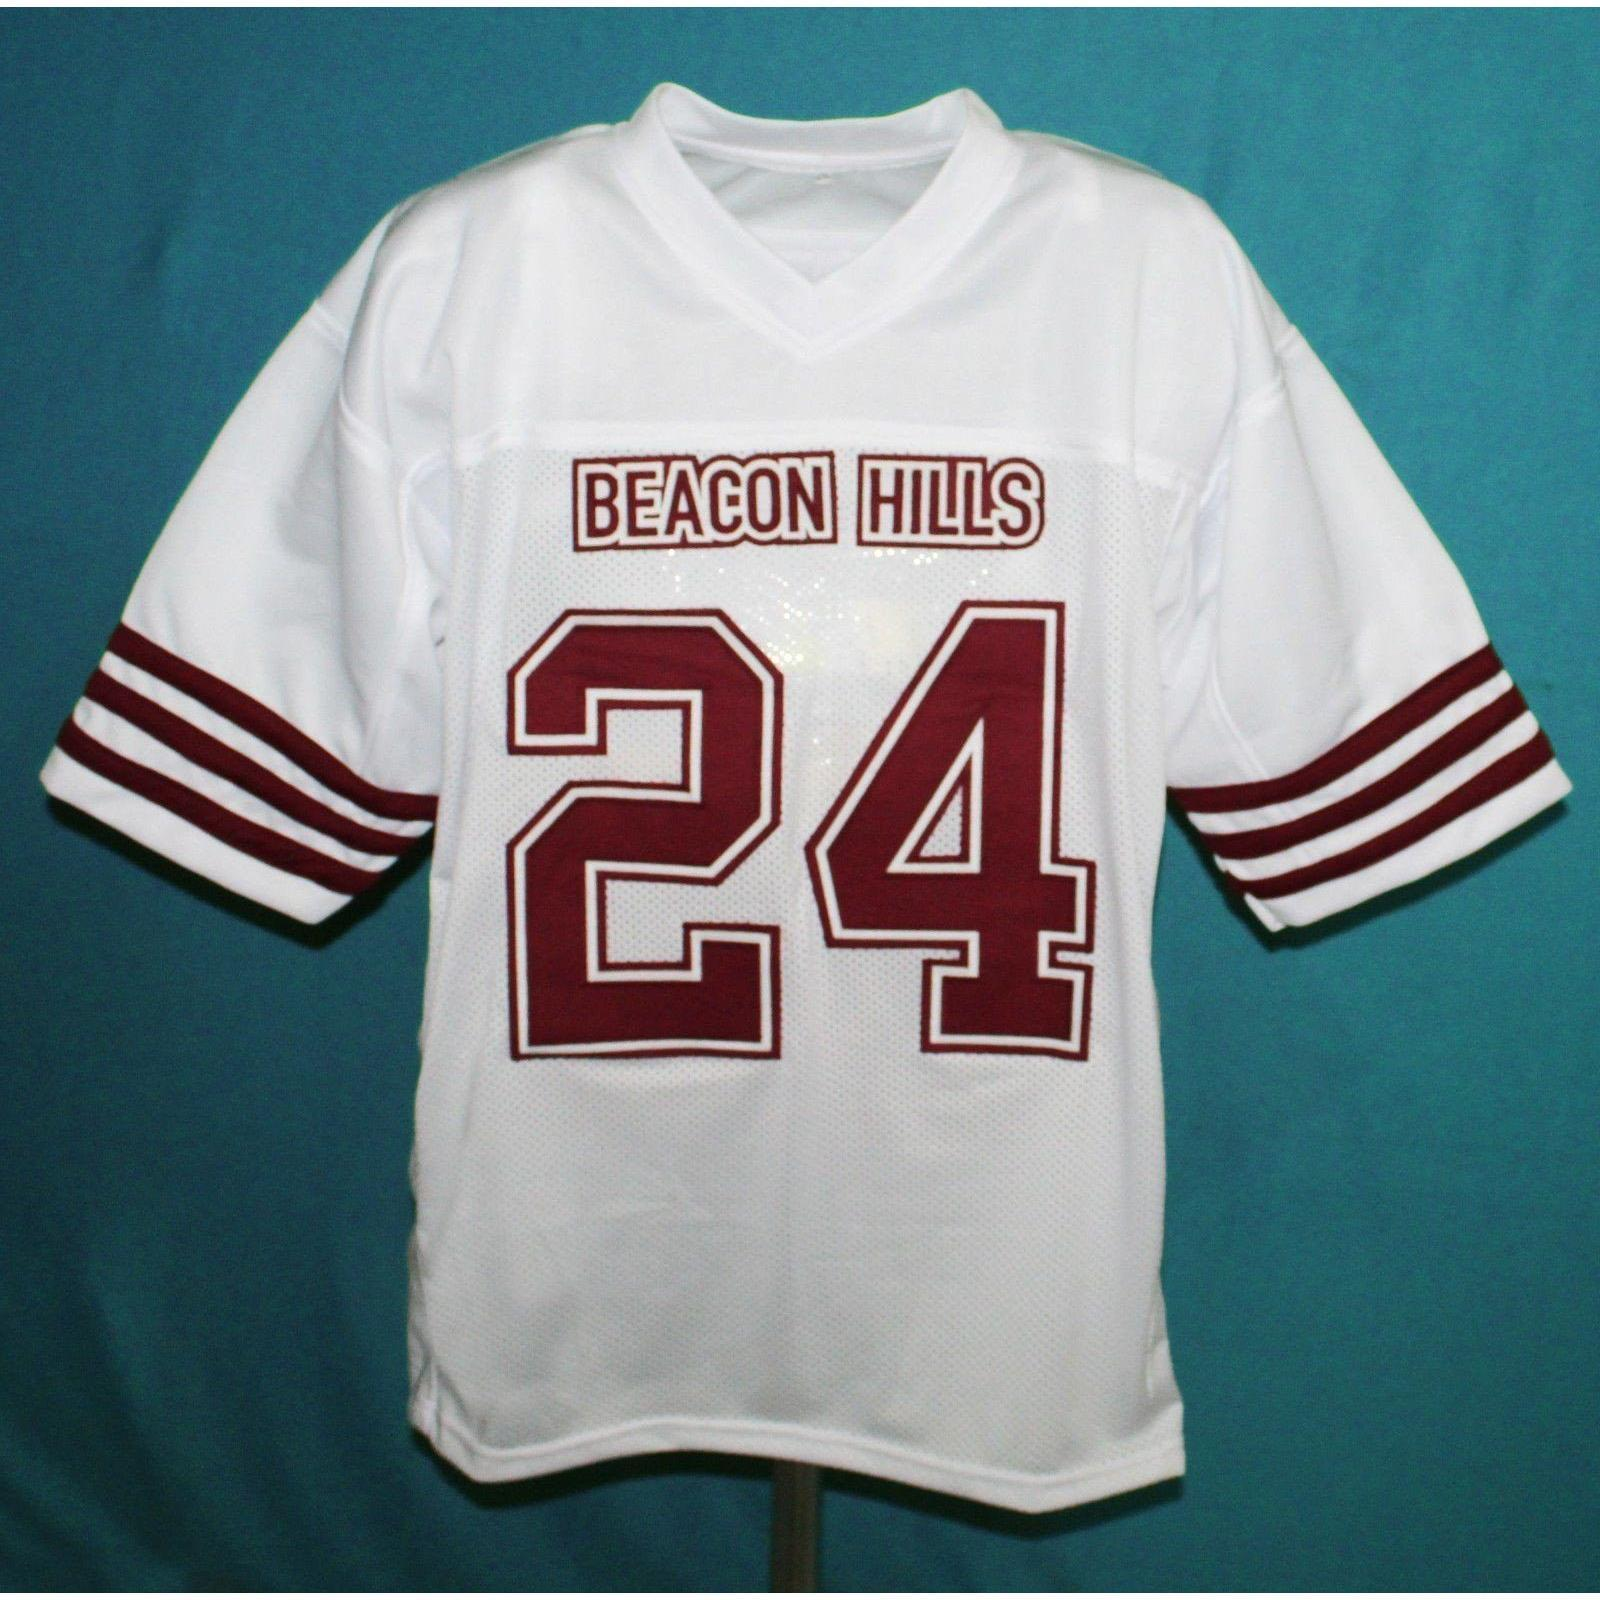 Beacon Hills Teen Wolf Football Jersey - Jersey Champs